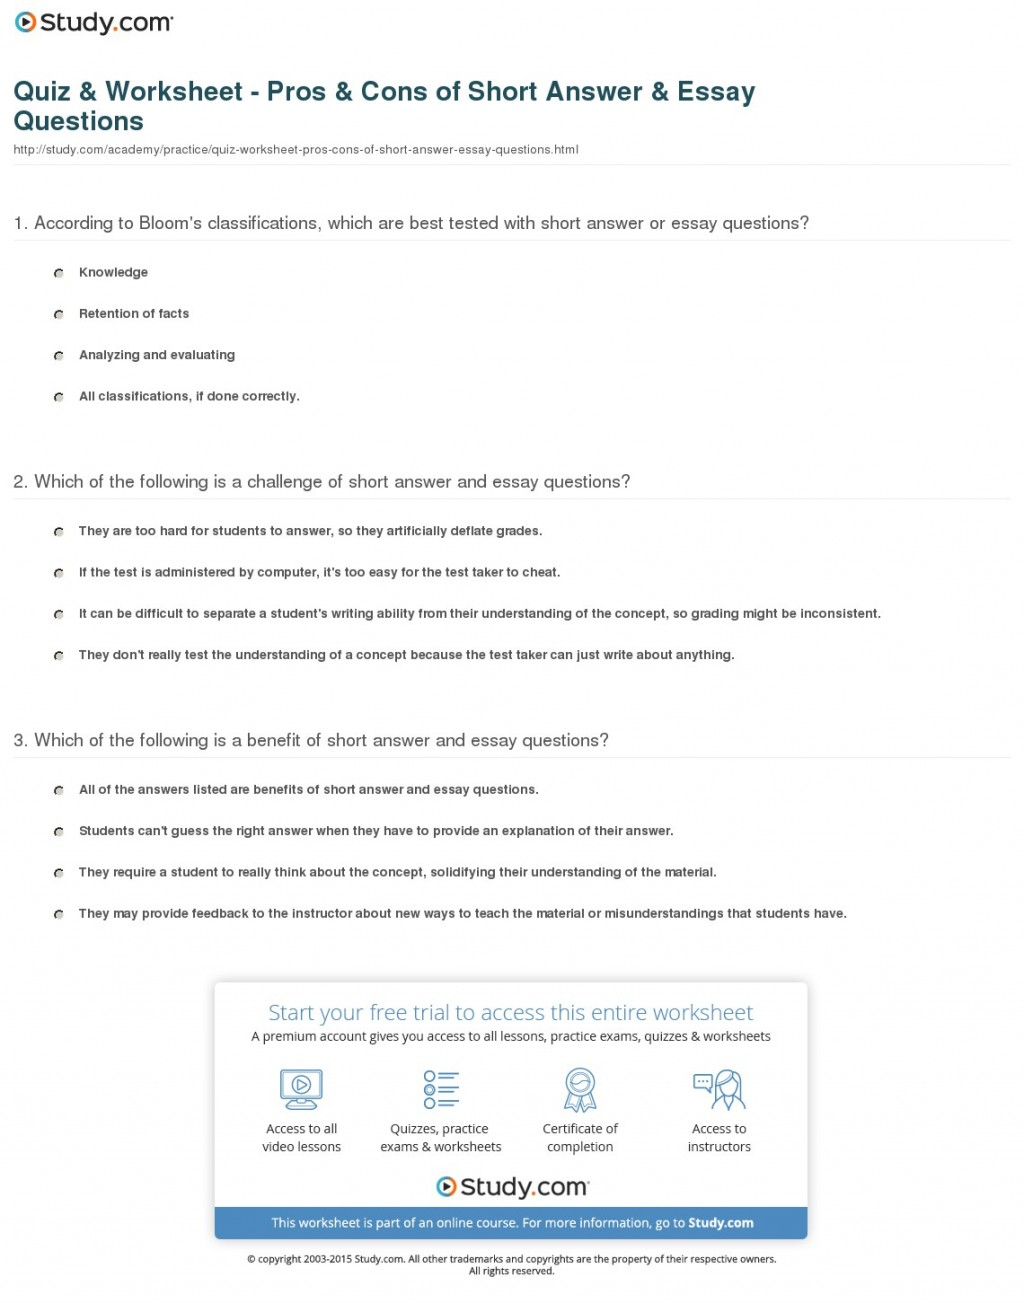 016 Writing Pros And Cons Essay Example Quiz Worksheet Of Short Answer Fascinating Explain How To Write An About The A Job Large